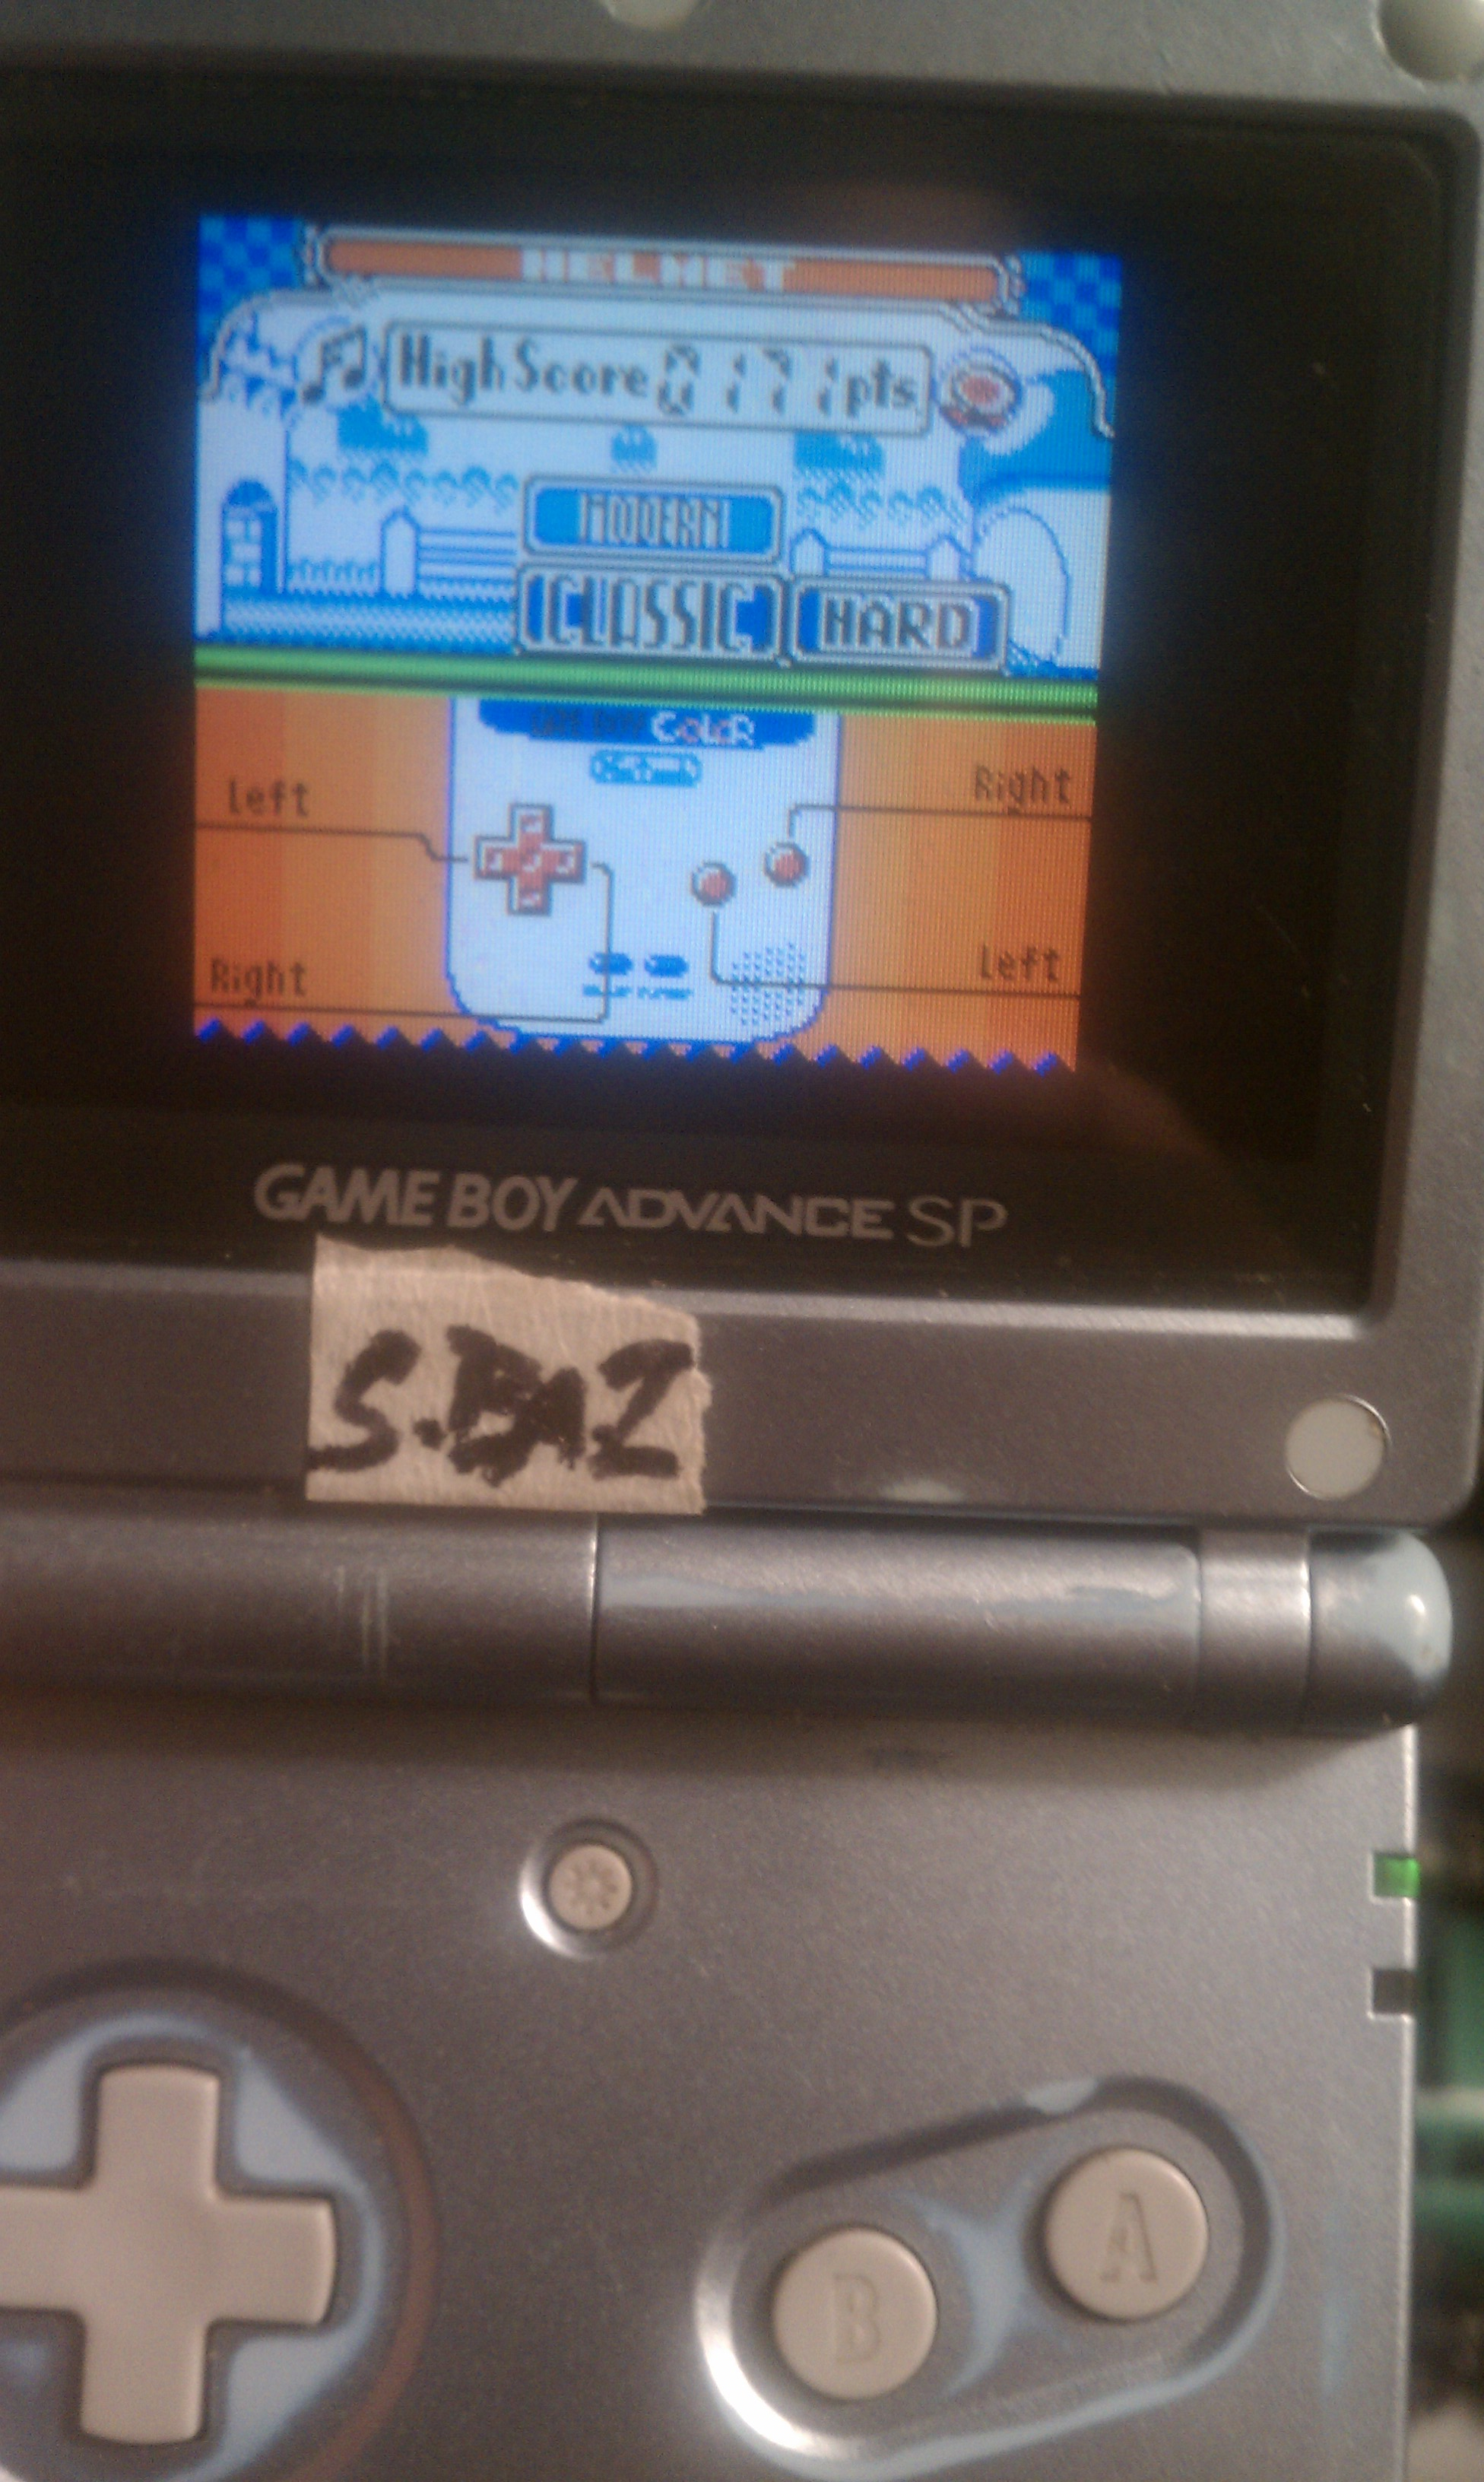 S.BAZ: Game & Watch Gallery 2: Helmet: Classic: Hard (Game Boy Color) 171 points on 2016-02-01 02:54:58